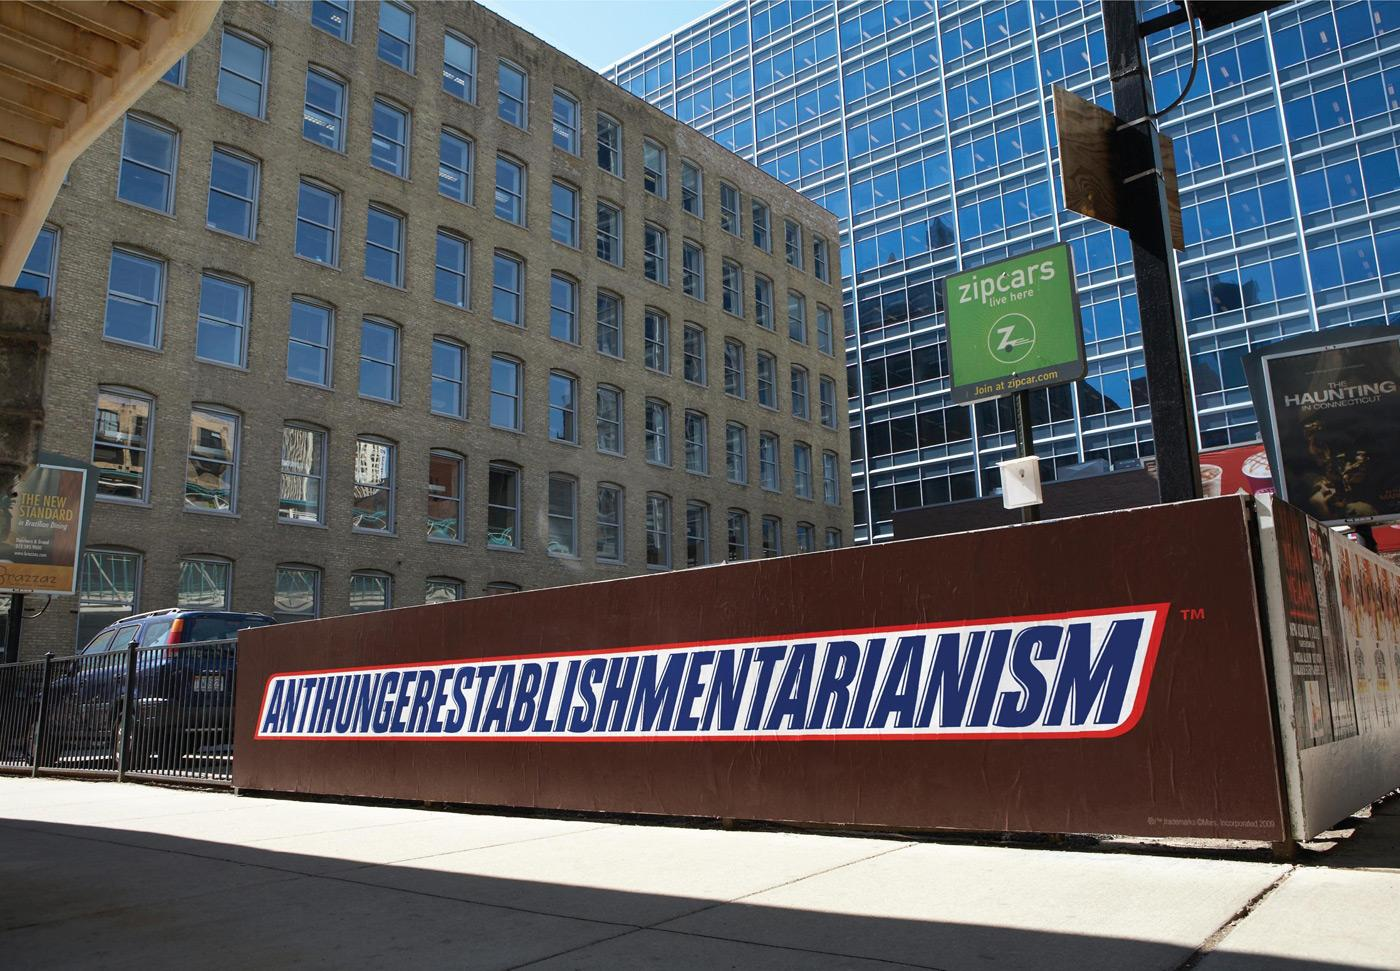 Snickers Outdoor Ad -  Antihungerestablishmentarianism